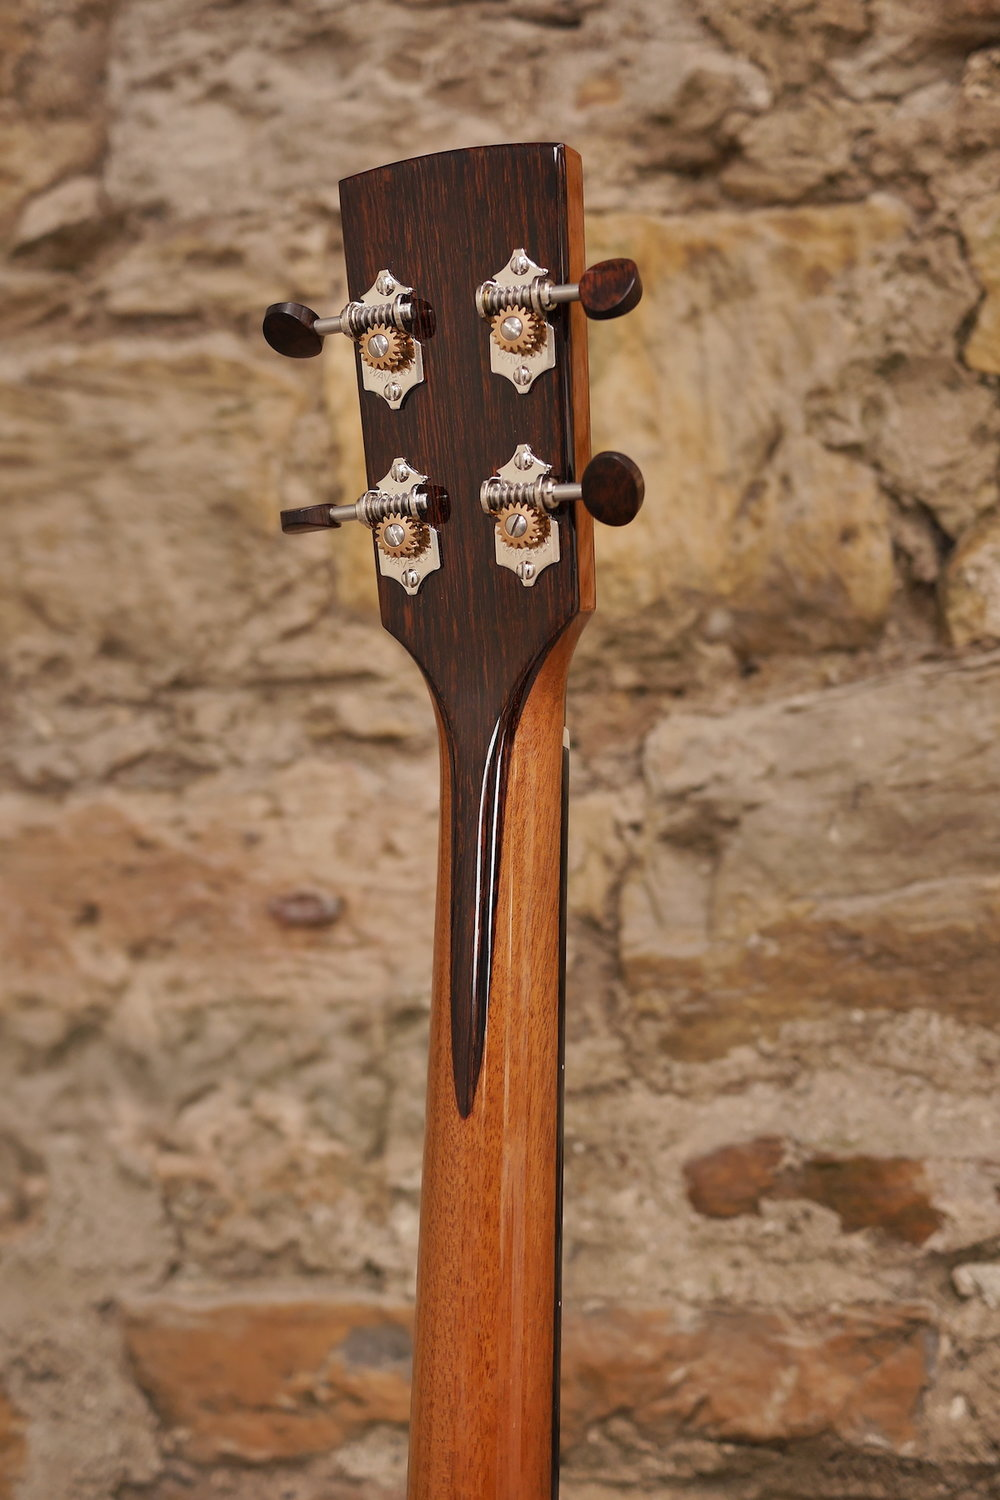 Dougie MacLean's Tenor with Spanish cedar neck